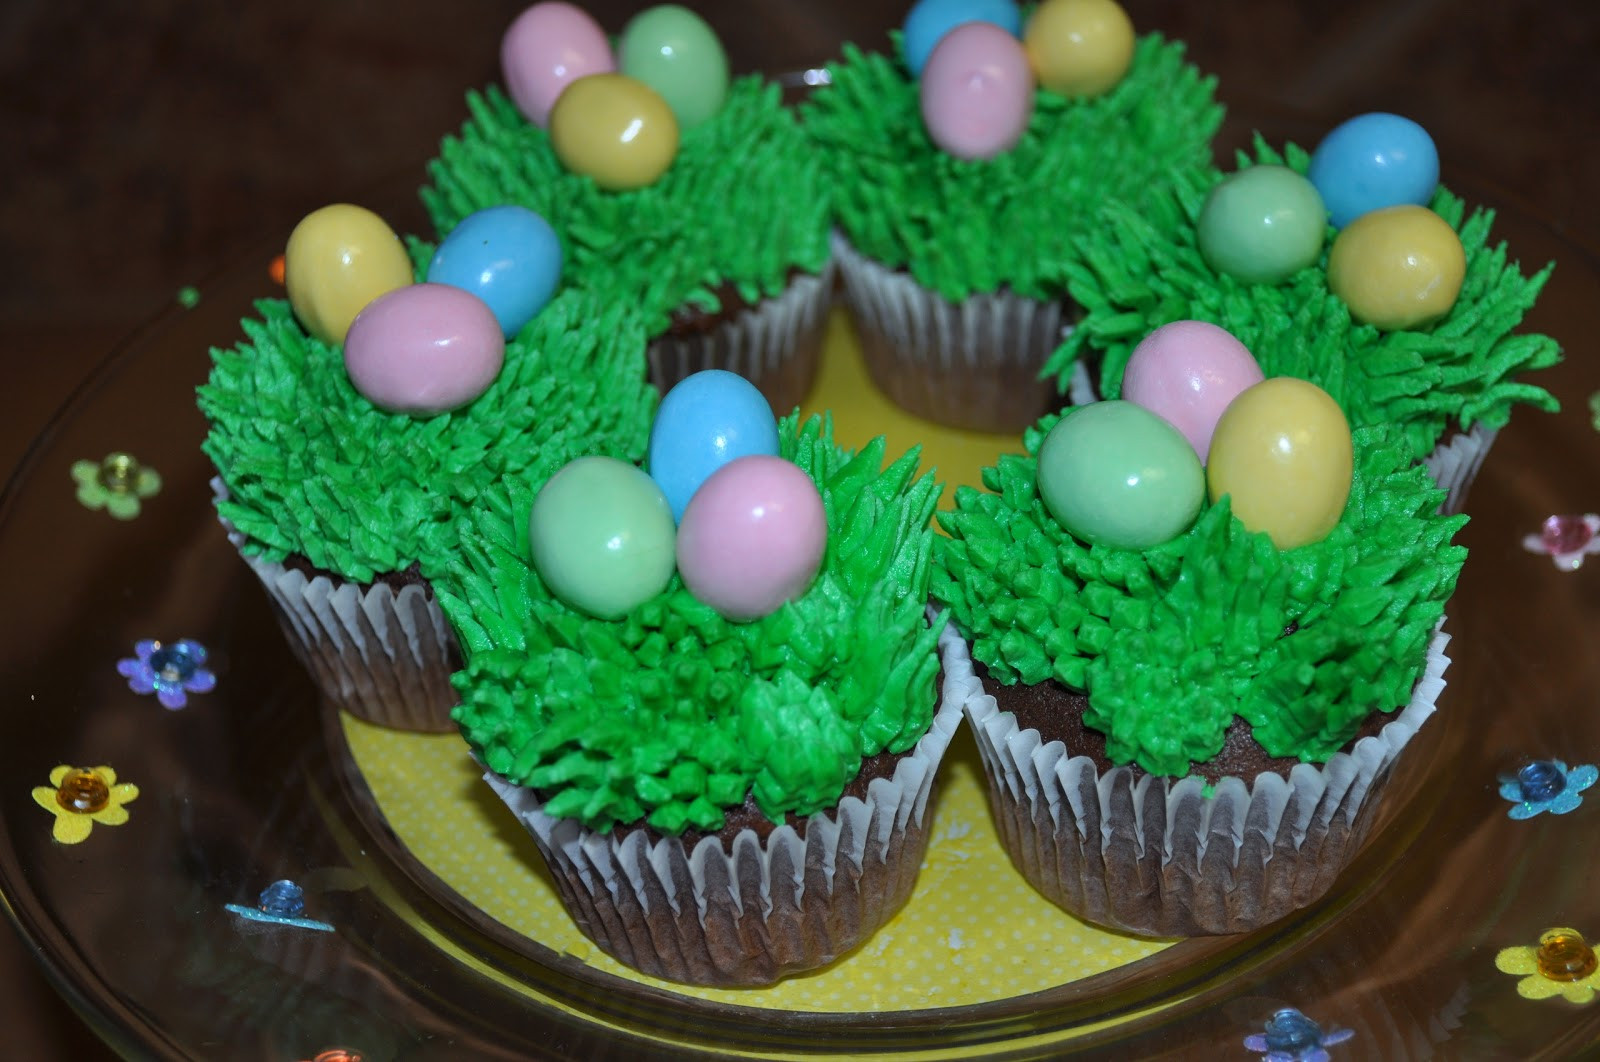 Easter Cupcakes Images  Morgan s Cakes Easter Cupcakes